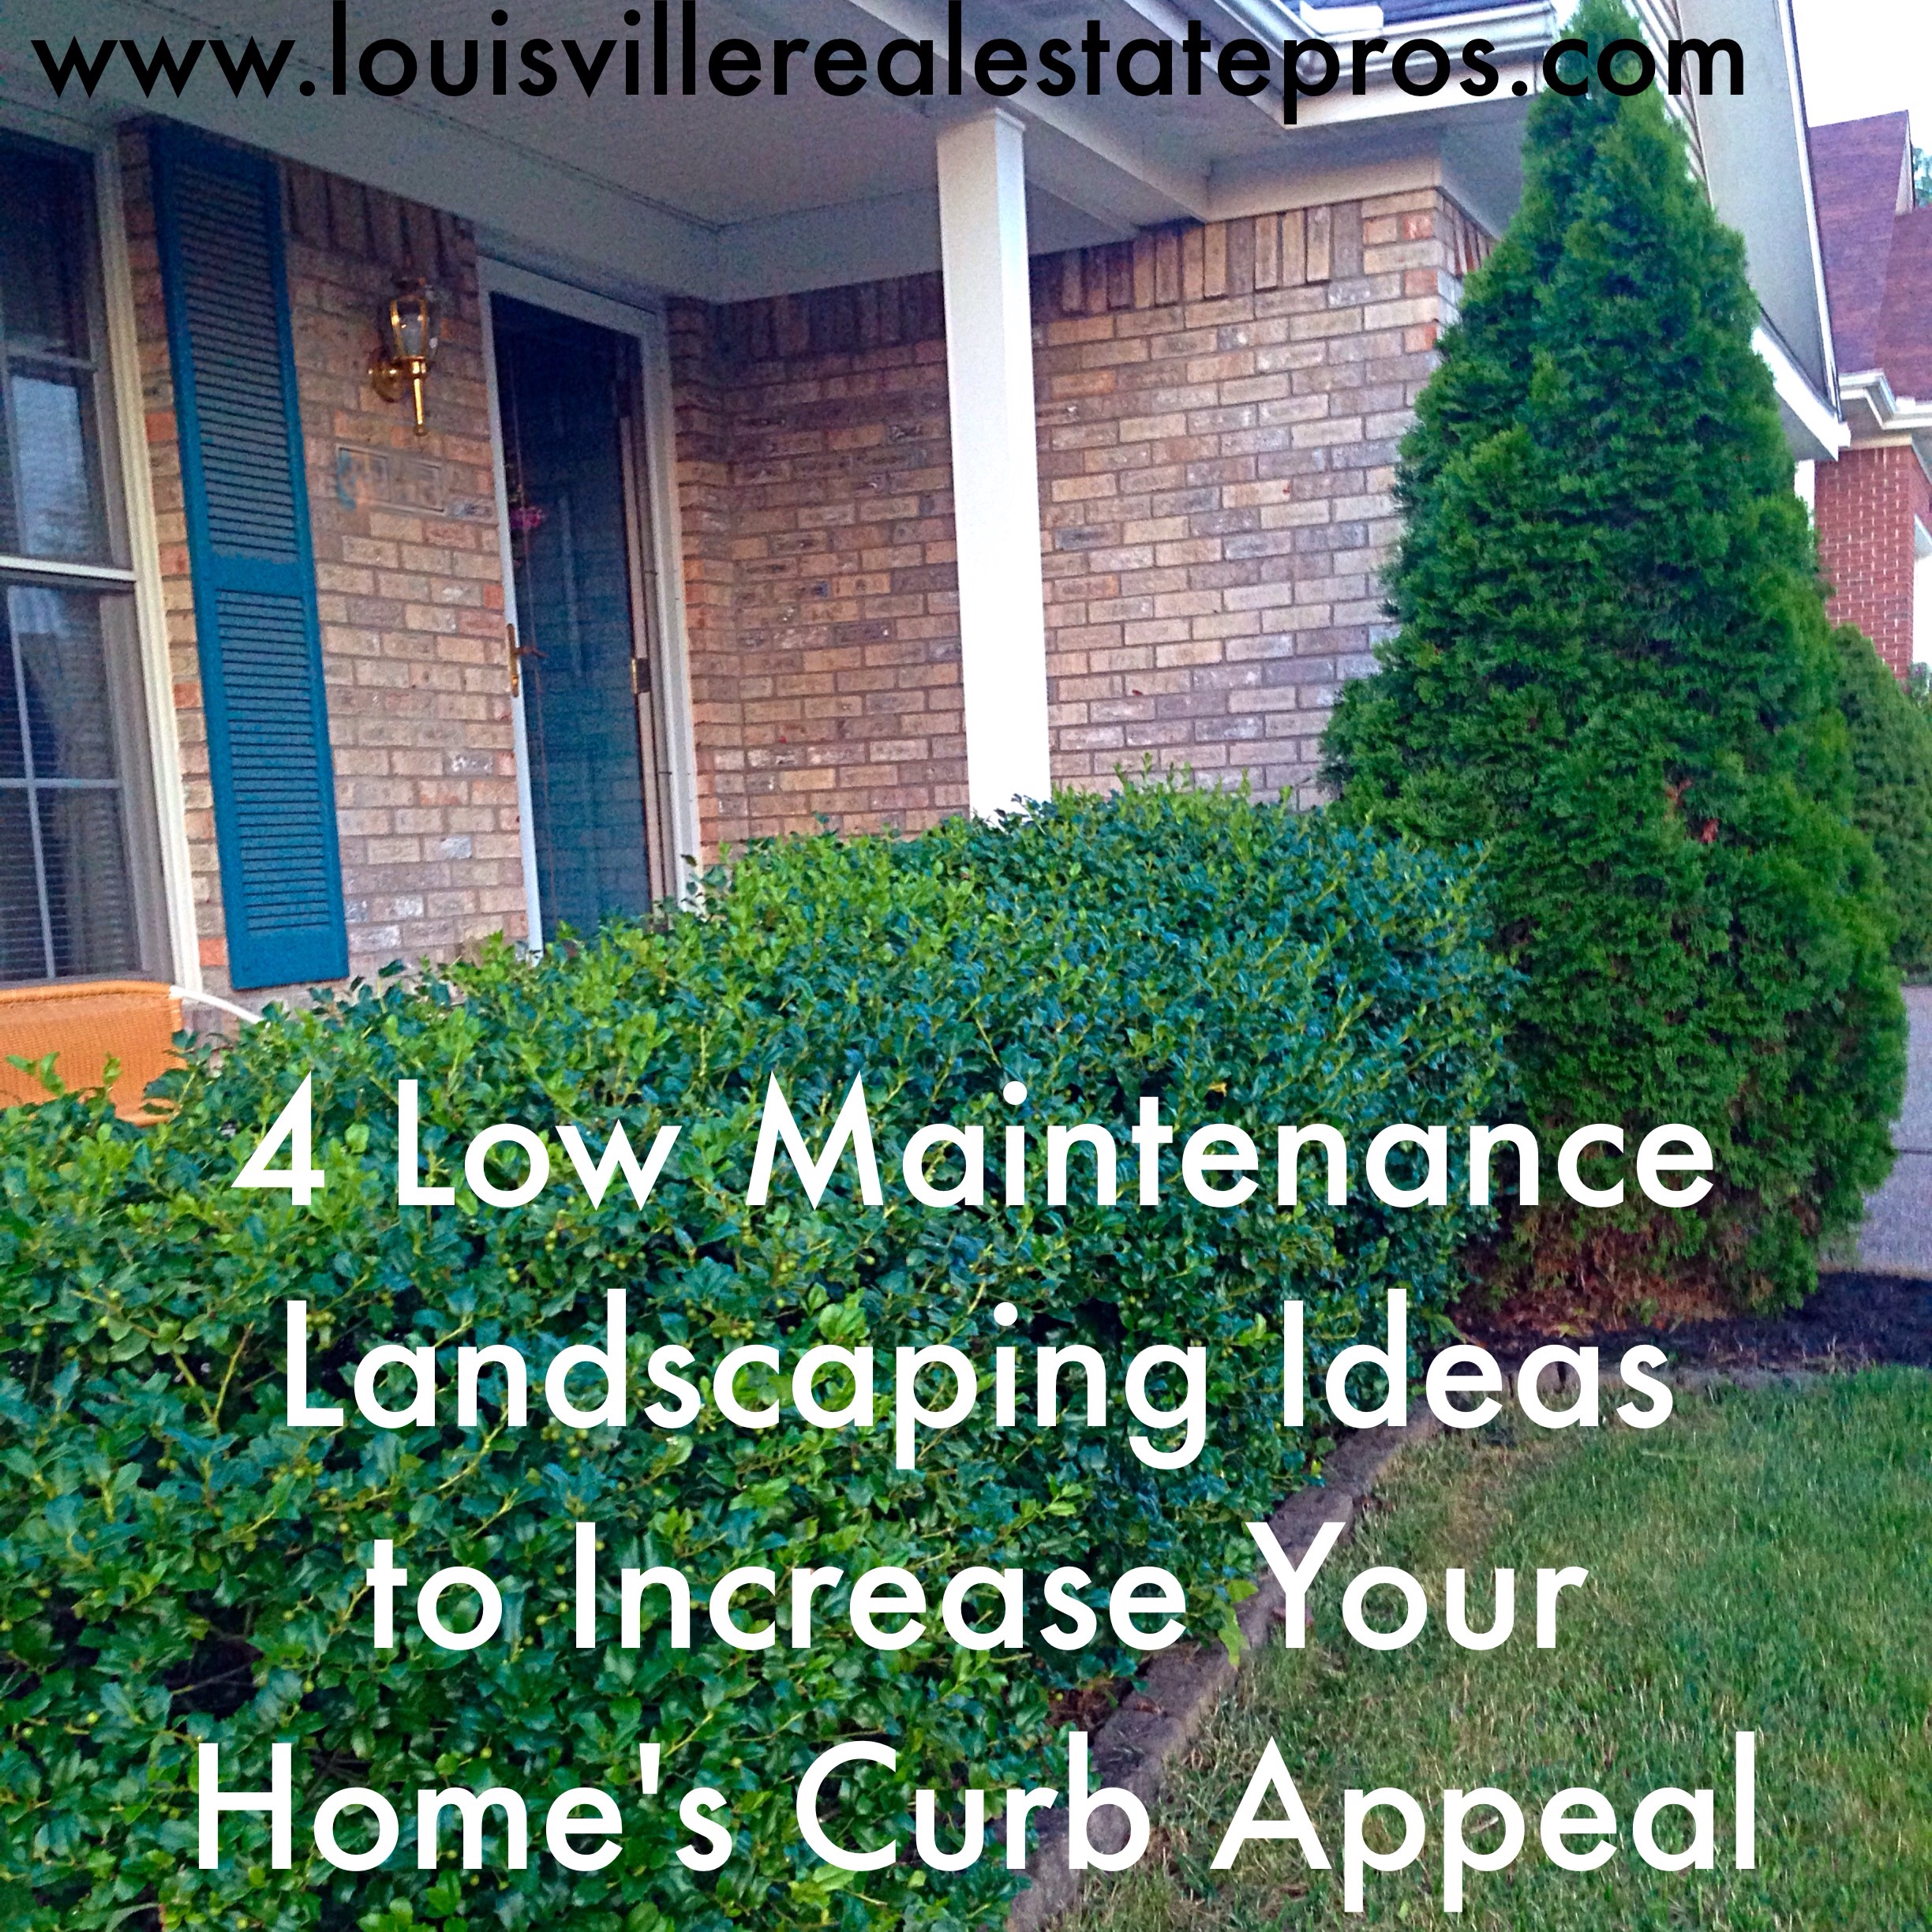 4 Low Maintenance Landscaping Ideas to Increase Your Home's Curb Appeal